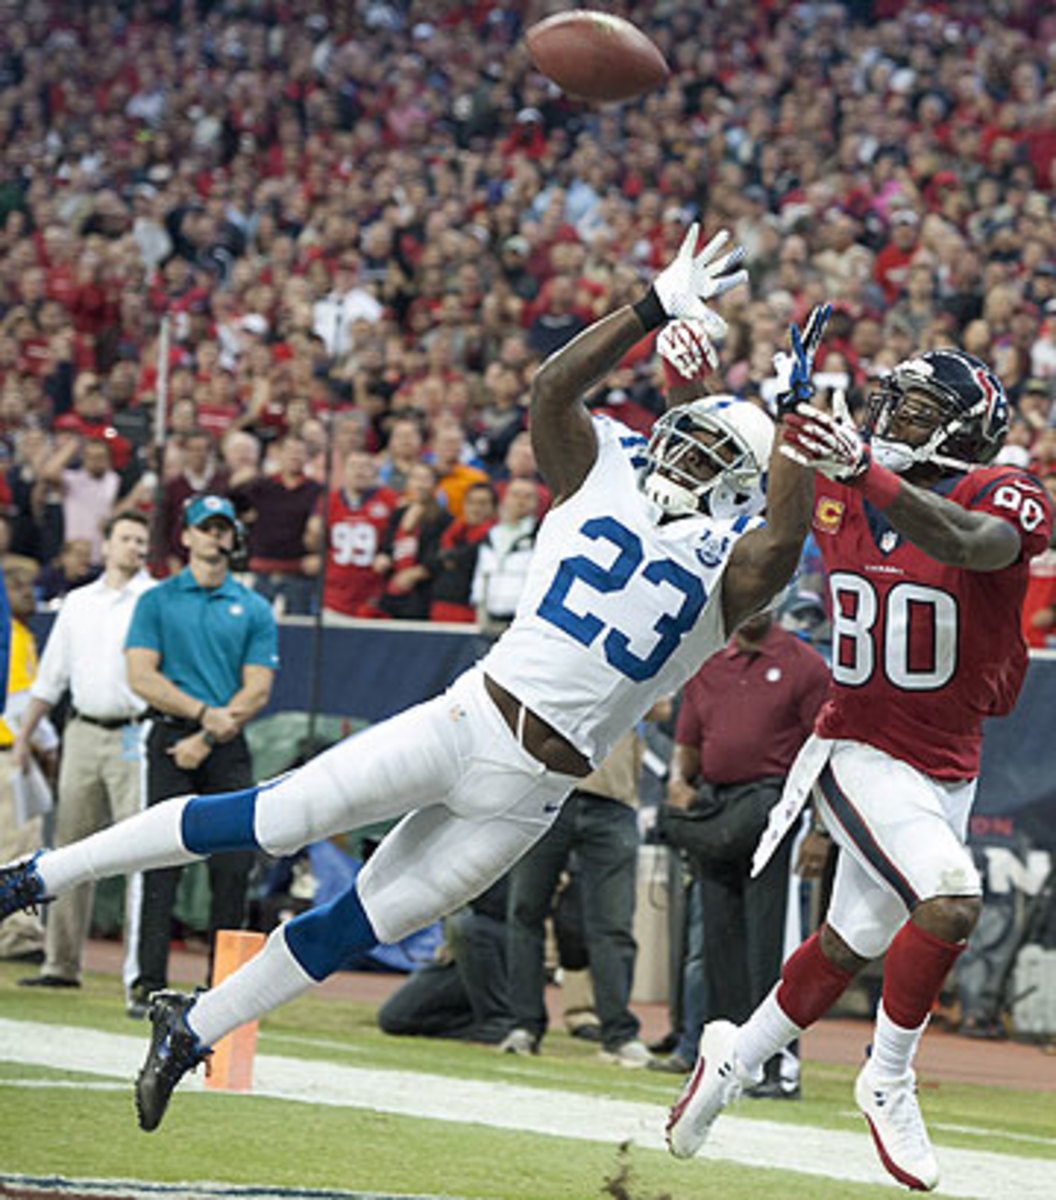 Vontae Davis is expected to be one of the most sought-after cornerbacks in free agency. (George Bridges/Getty Images)